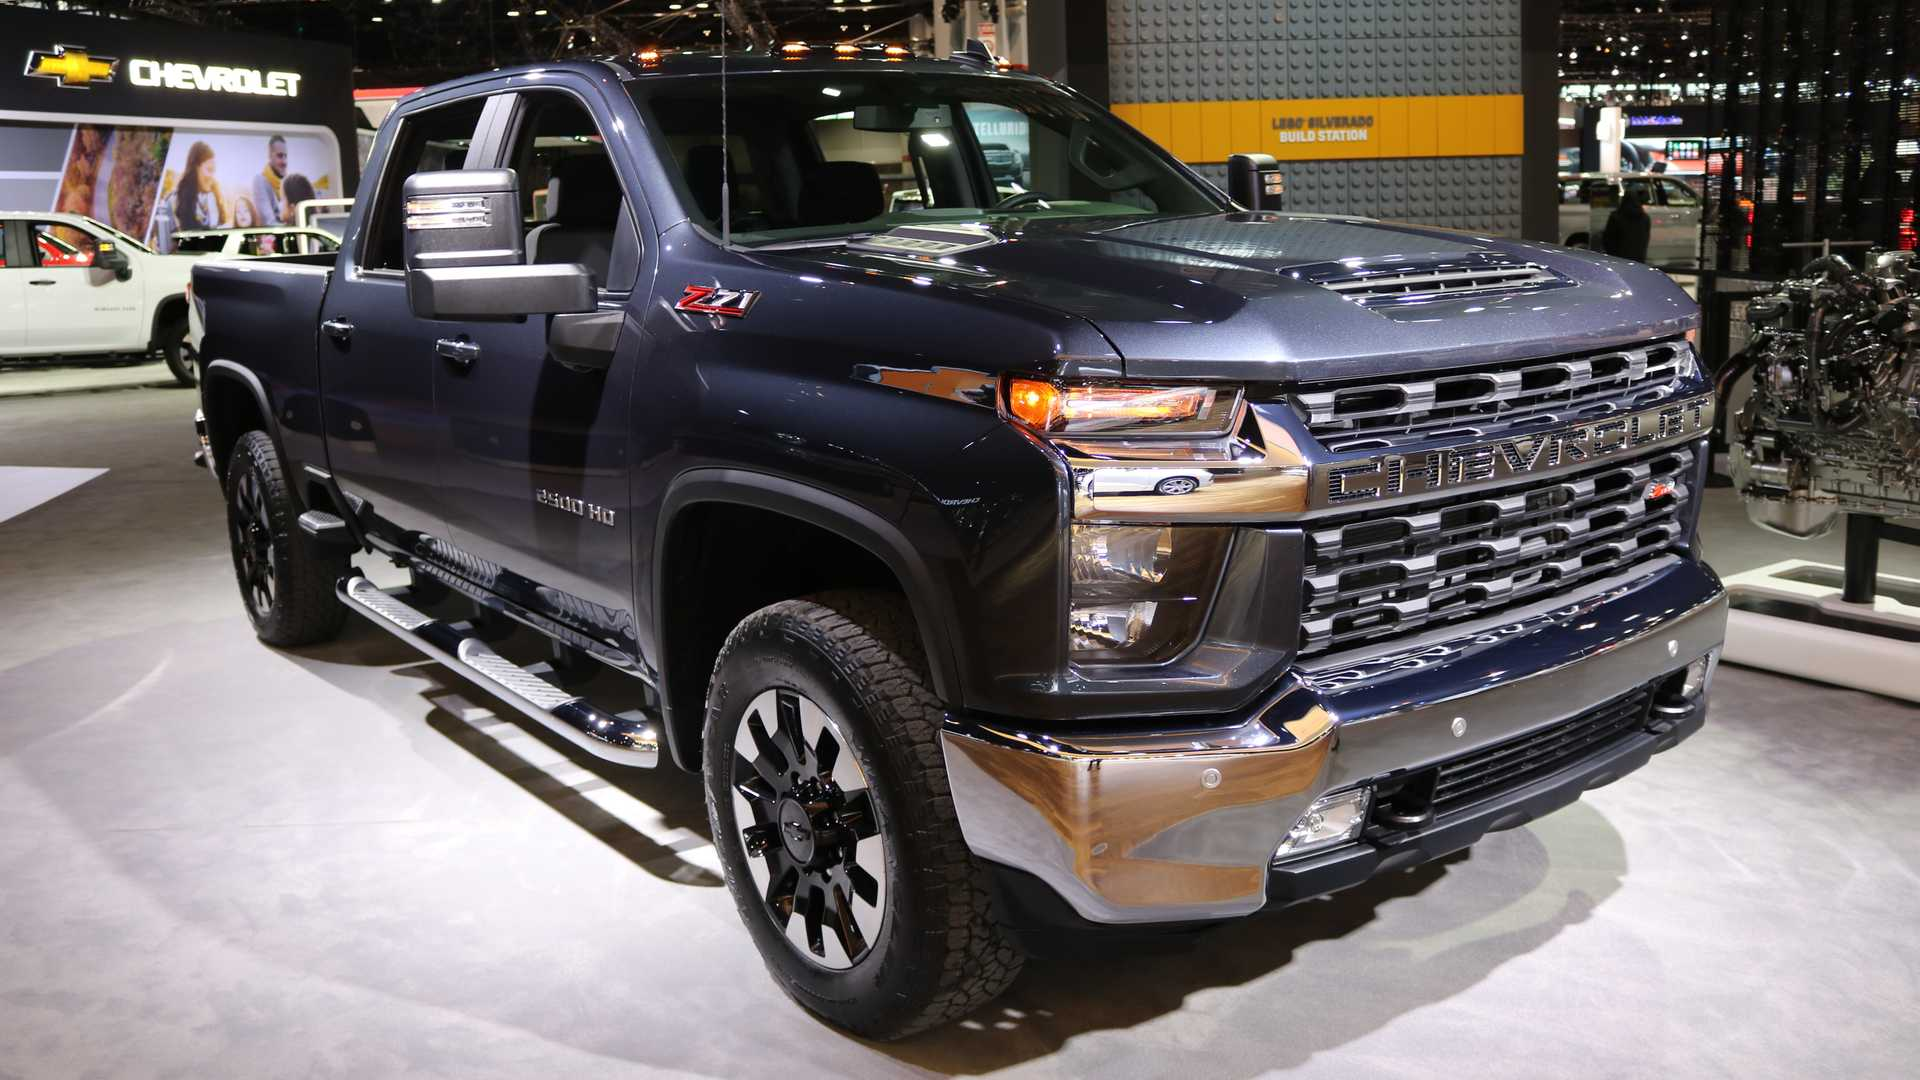 43 New 2020 Chevy Silverado Photos